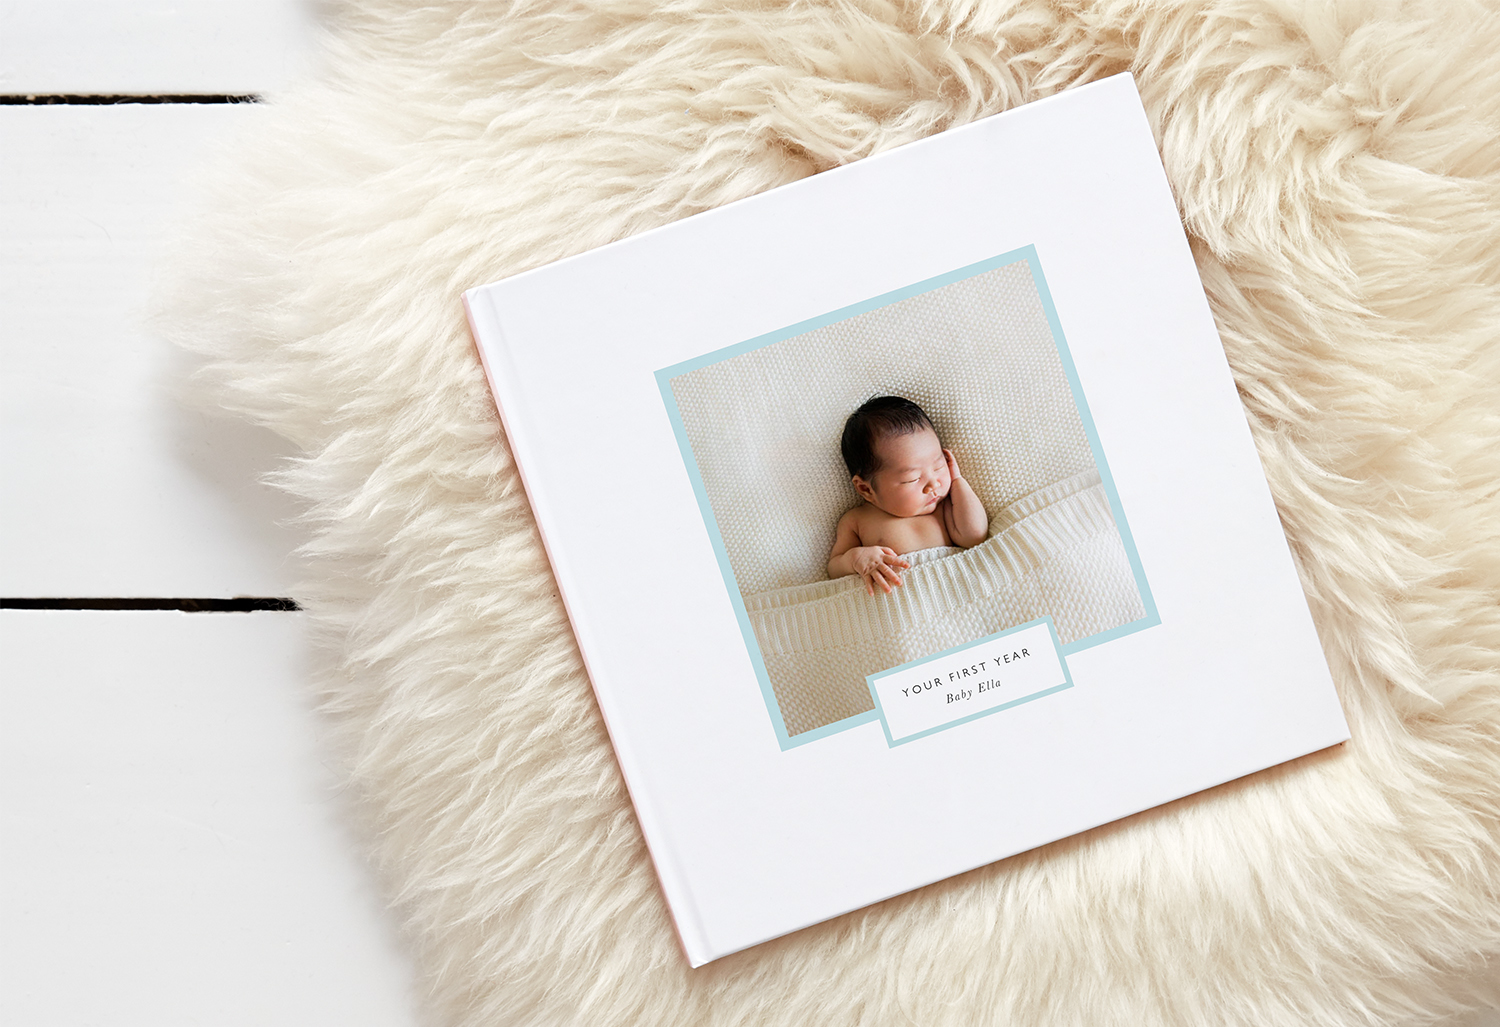 baby photo book ideas - diary style